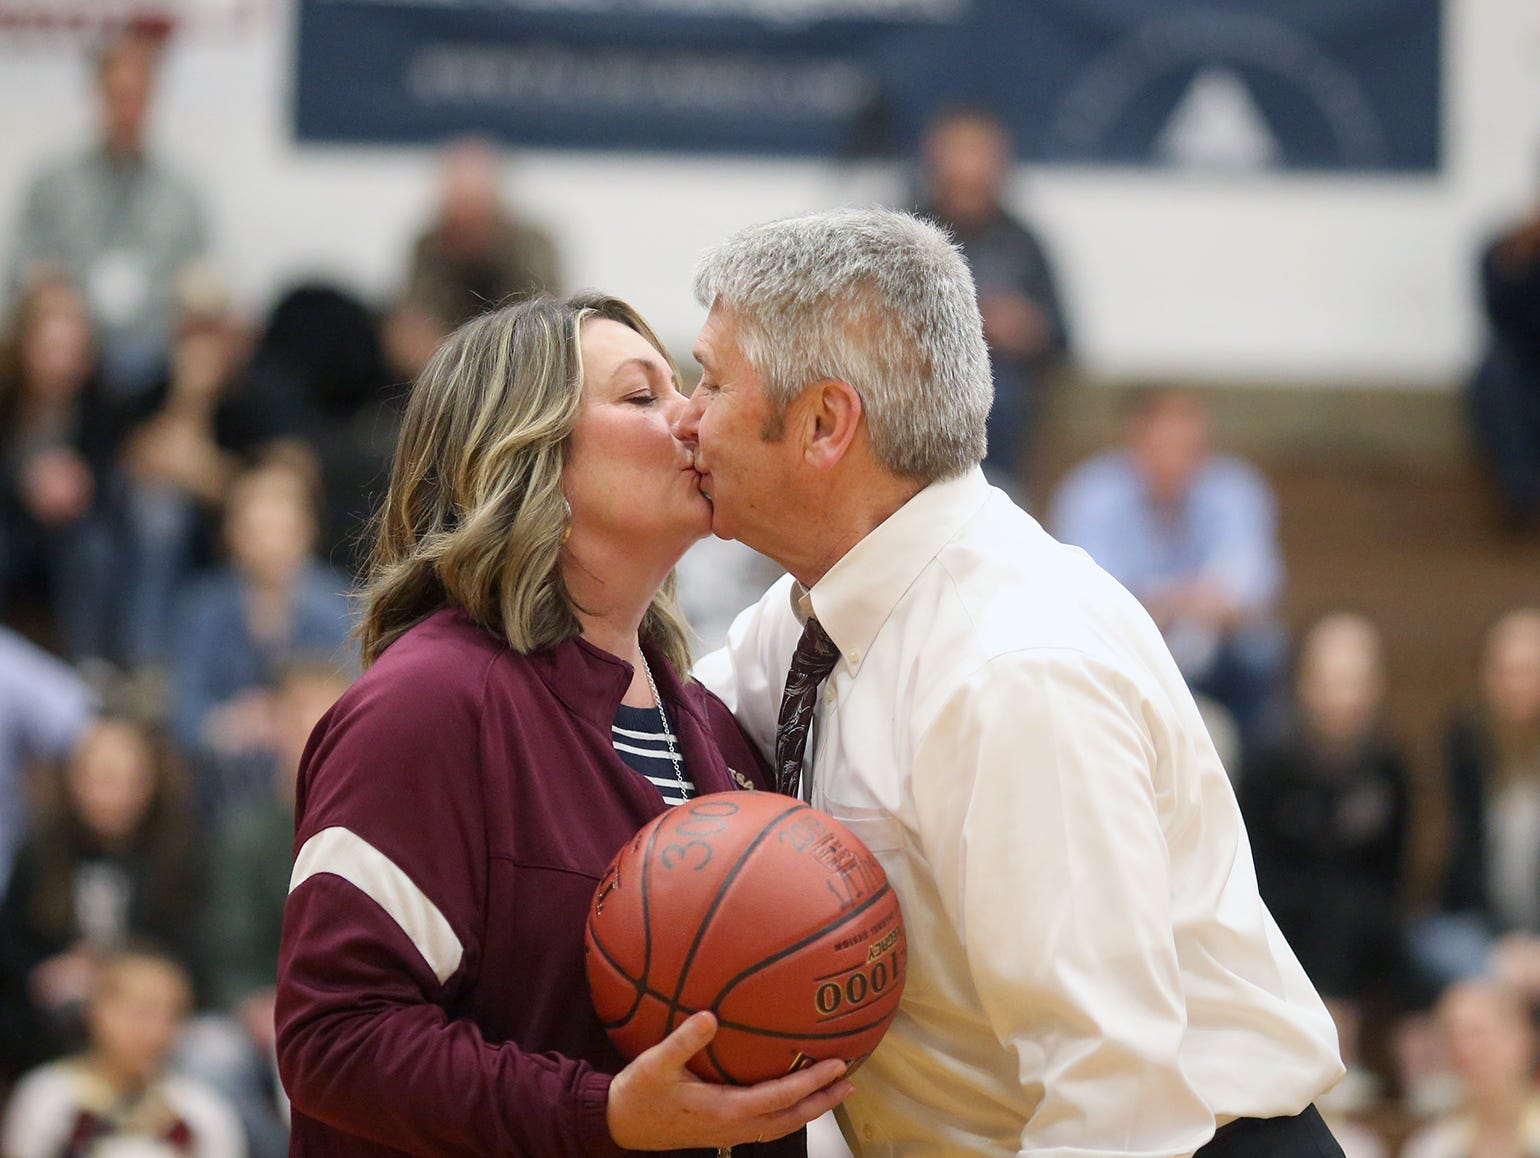 South Kitsap High School varsity head basketball coach John Callaghan won his 300th game against Bellarmine at South Kitsap on Thursday, January 17, 2019. Callaghan gives a kiss to his wife Denise at mid-court after the game.